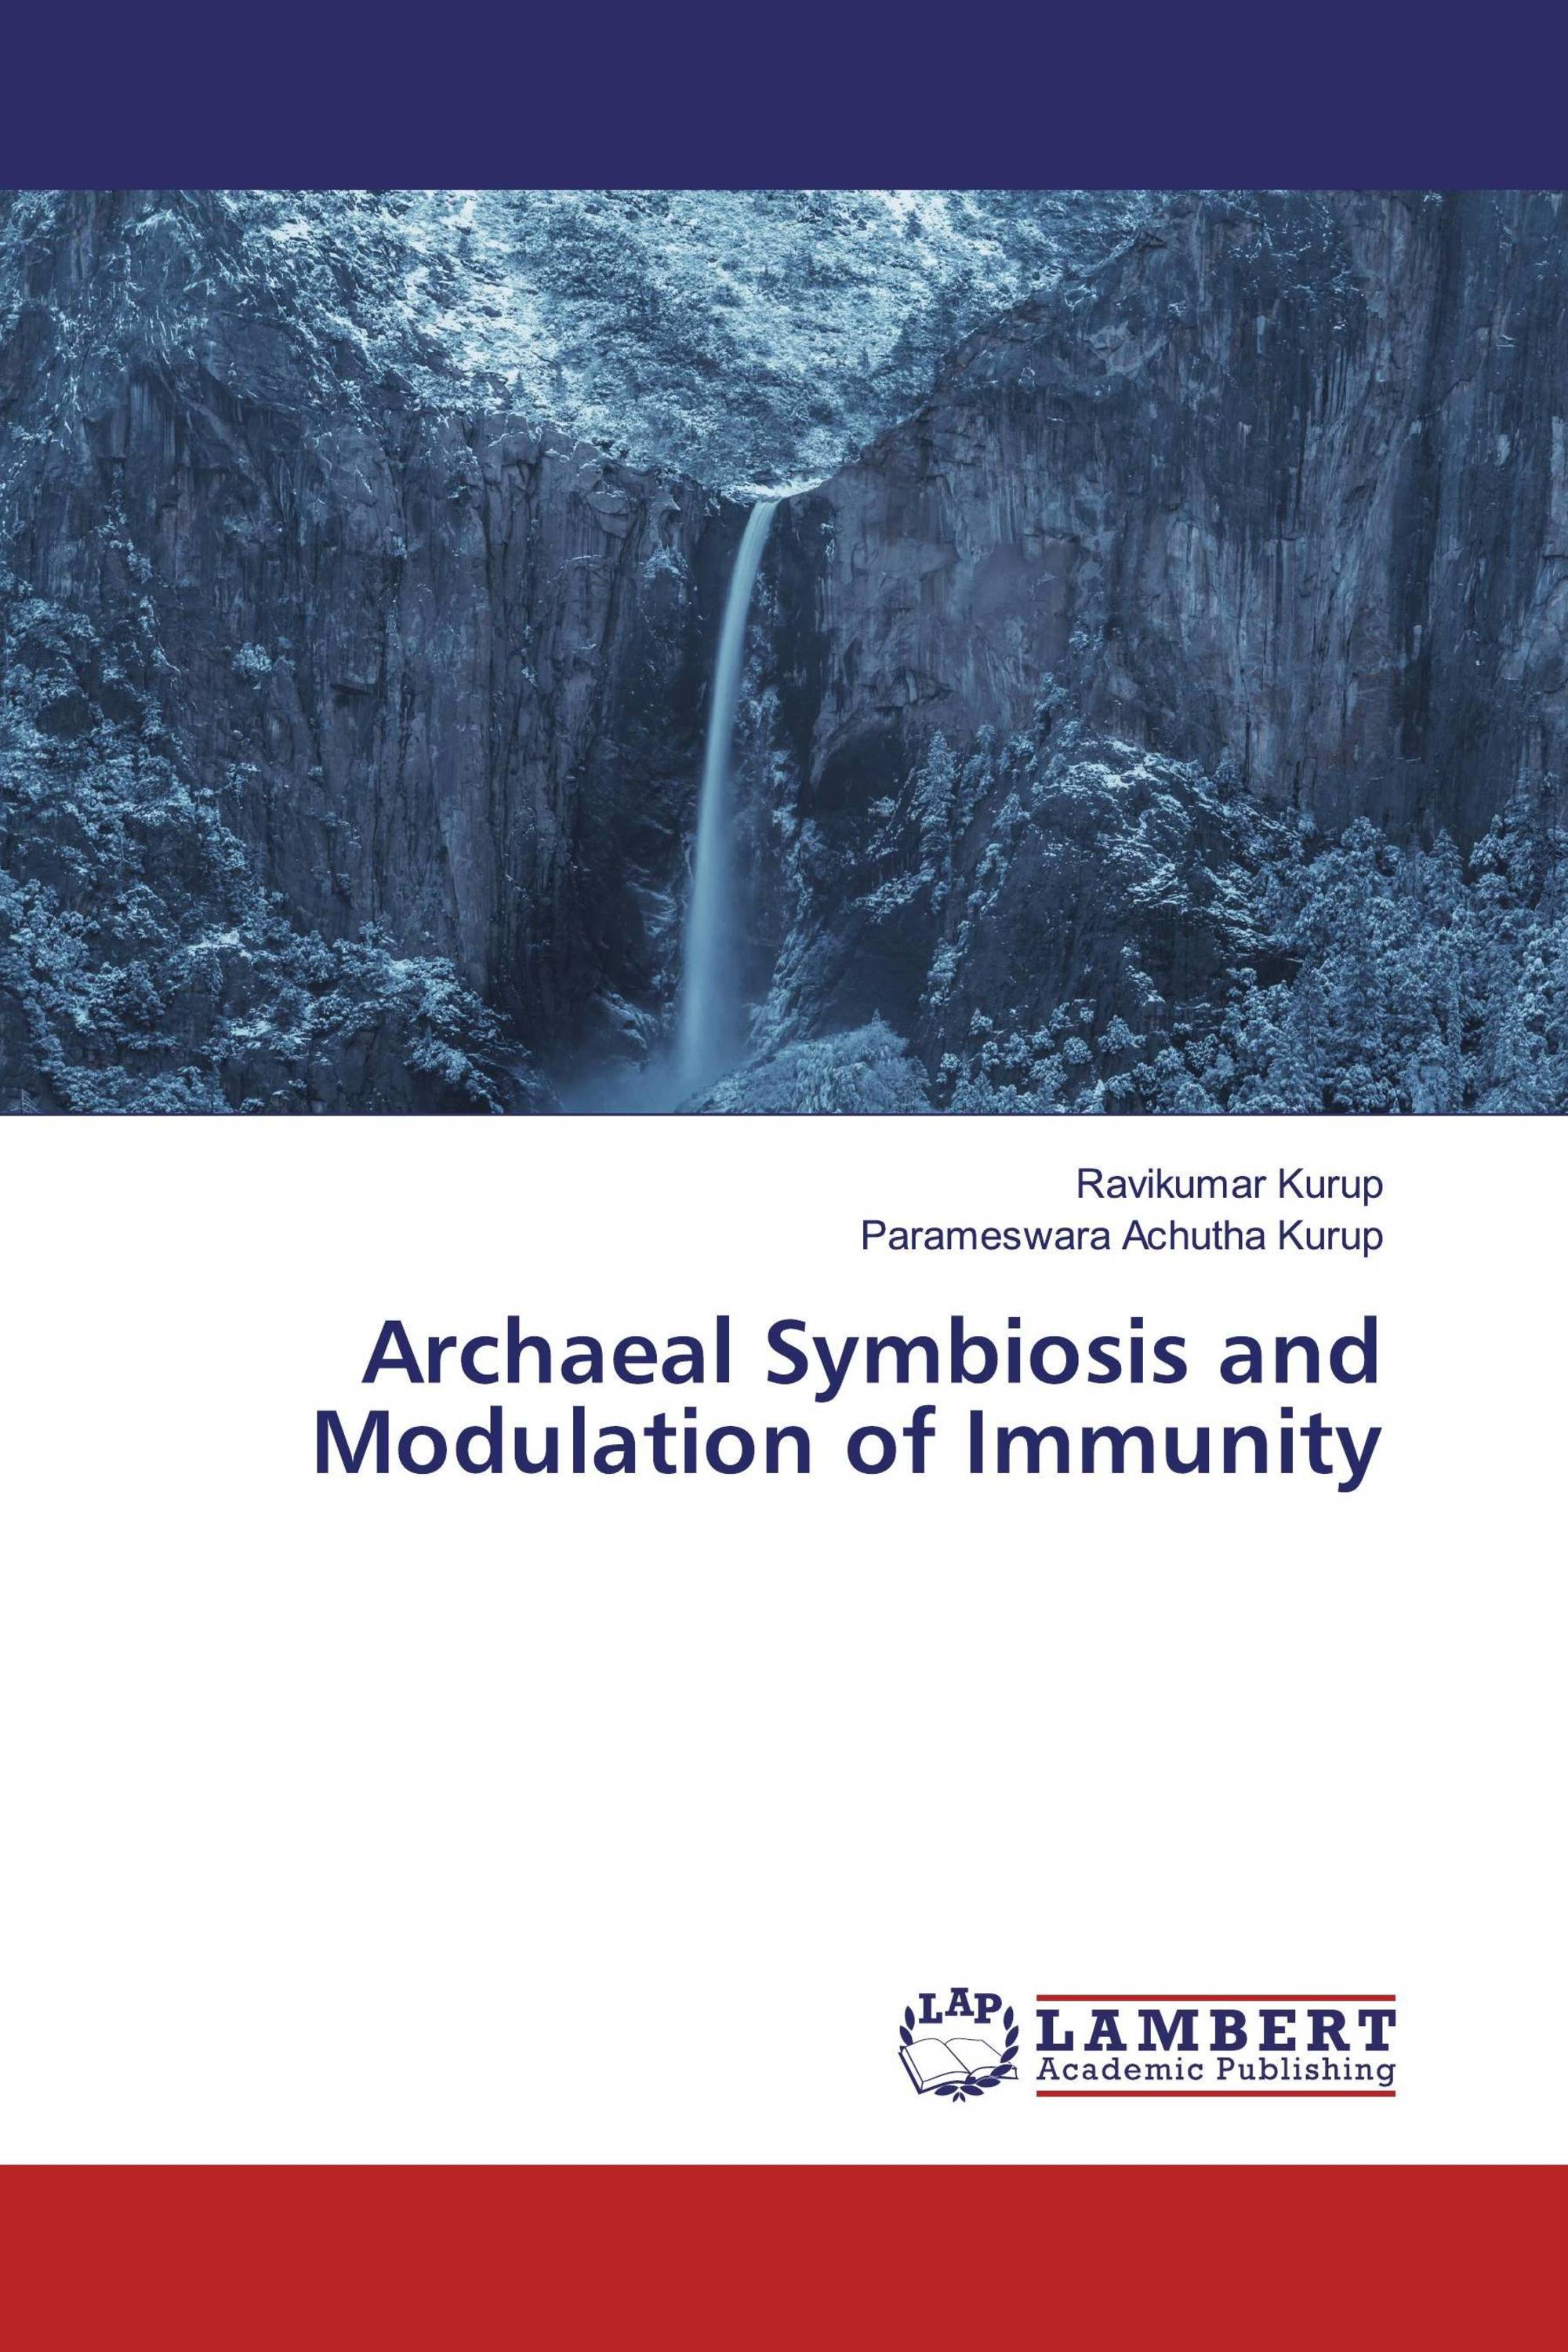 Archaeal Symbiosis and Modulation of Immunity